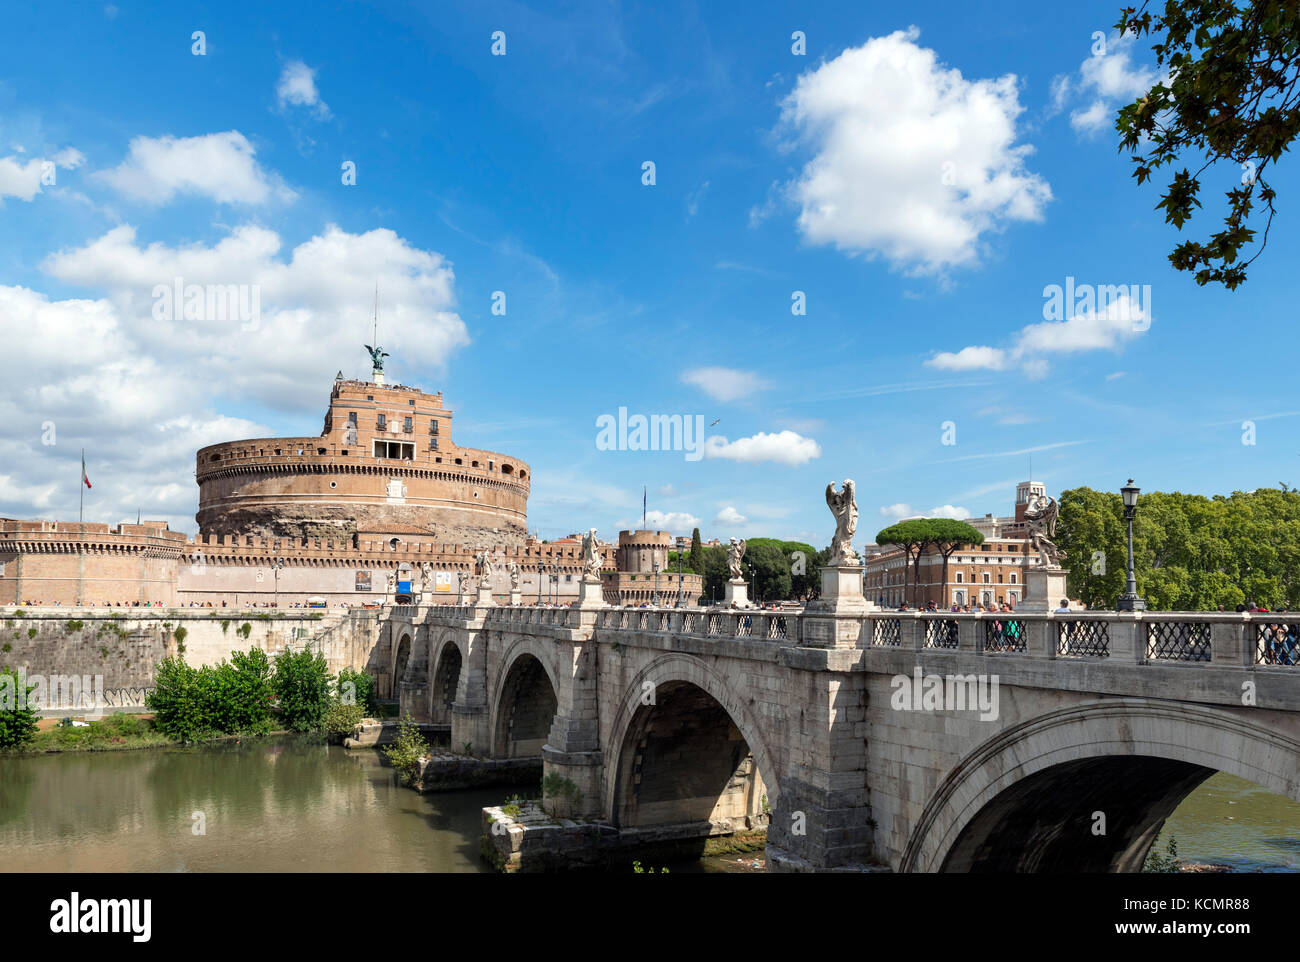 The Castel Sant'Angelo and the Ponte Sant'Angelo over the River Tiber, Rome, Italy - Stock Image